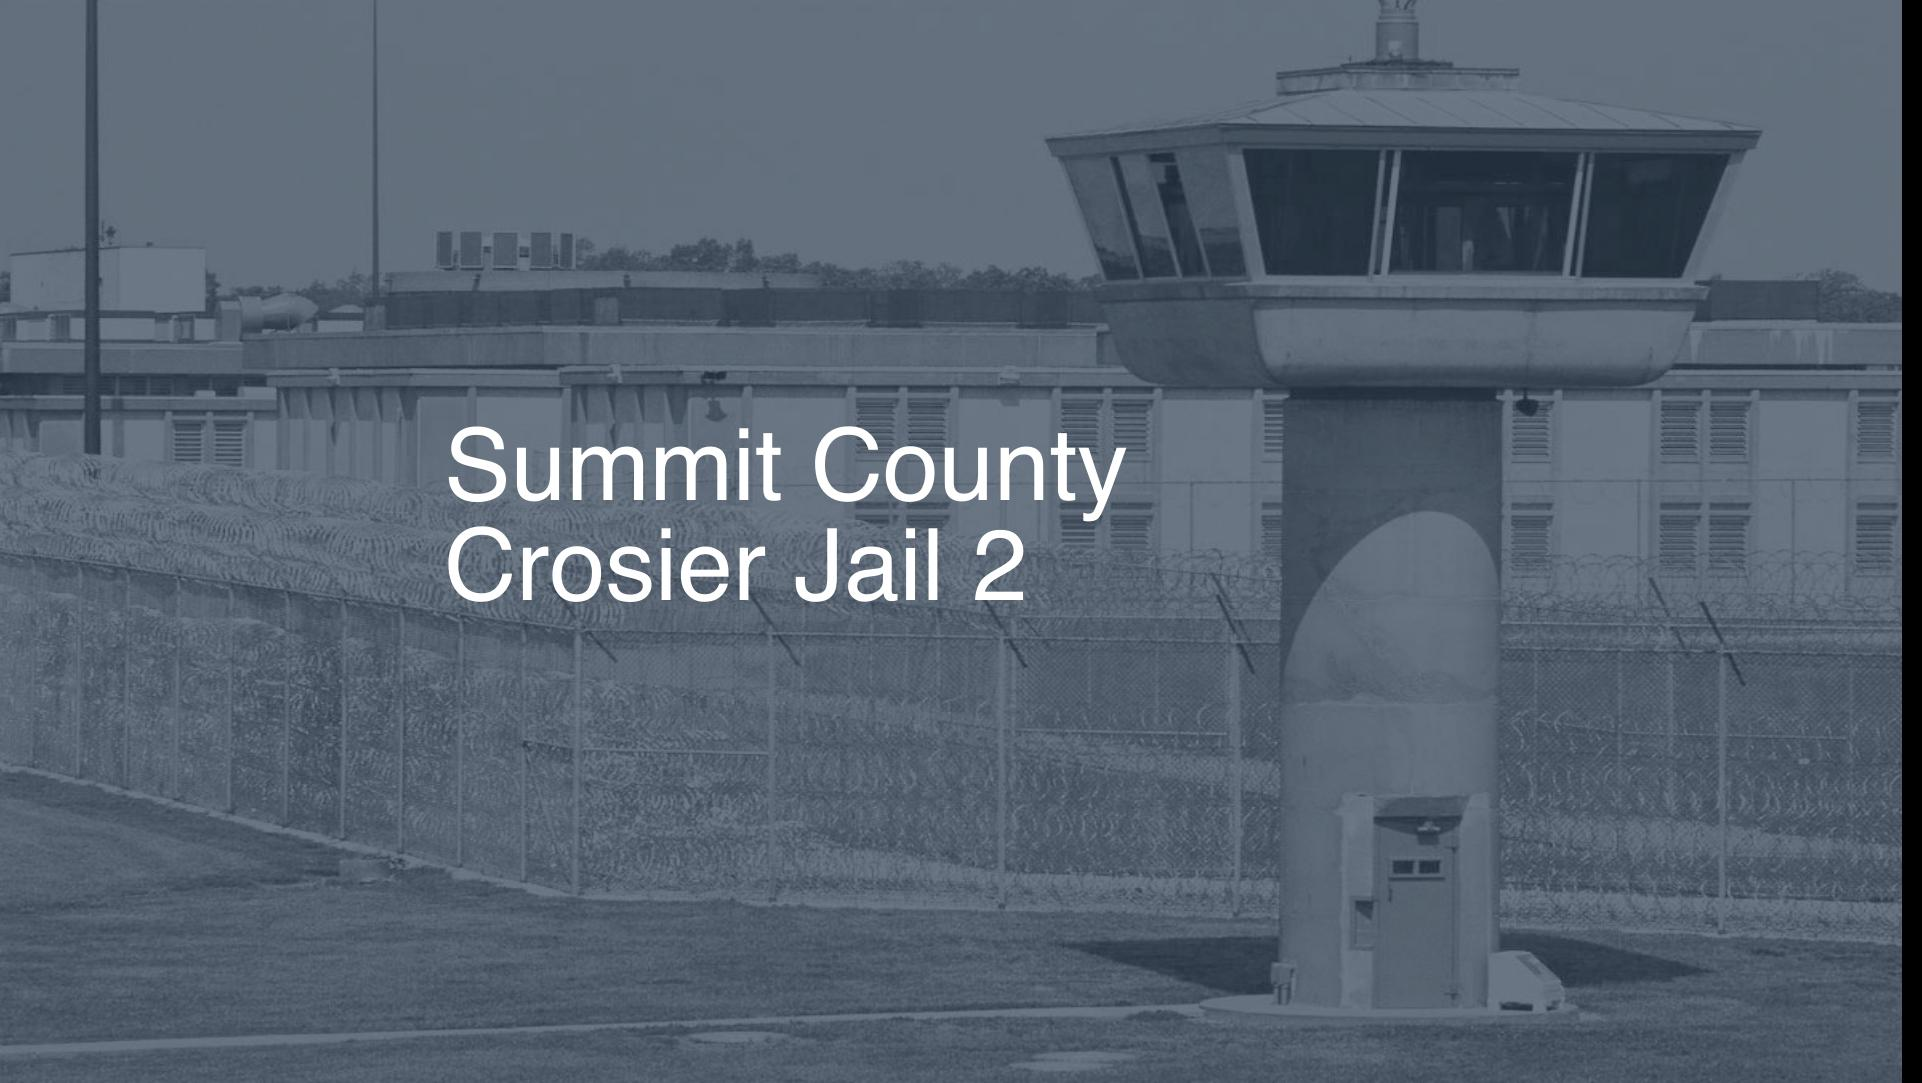 Summit County Crosier Jail | Pigeonly - Inmate Search